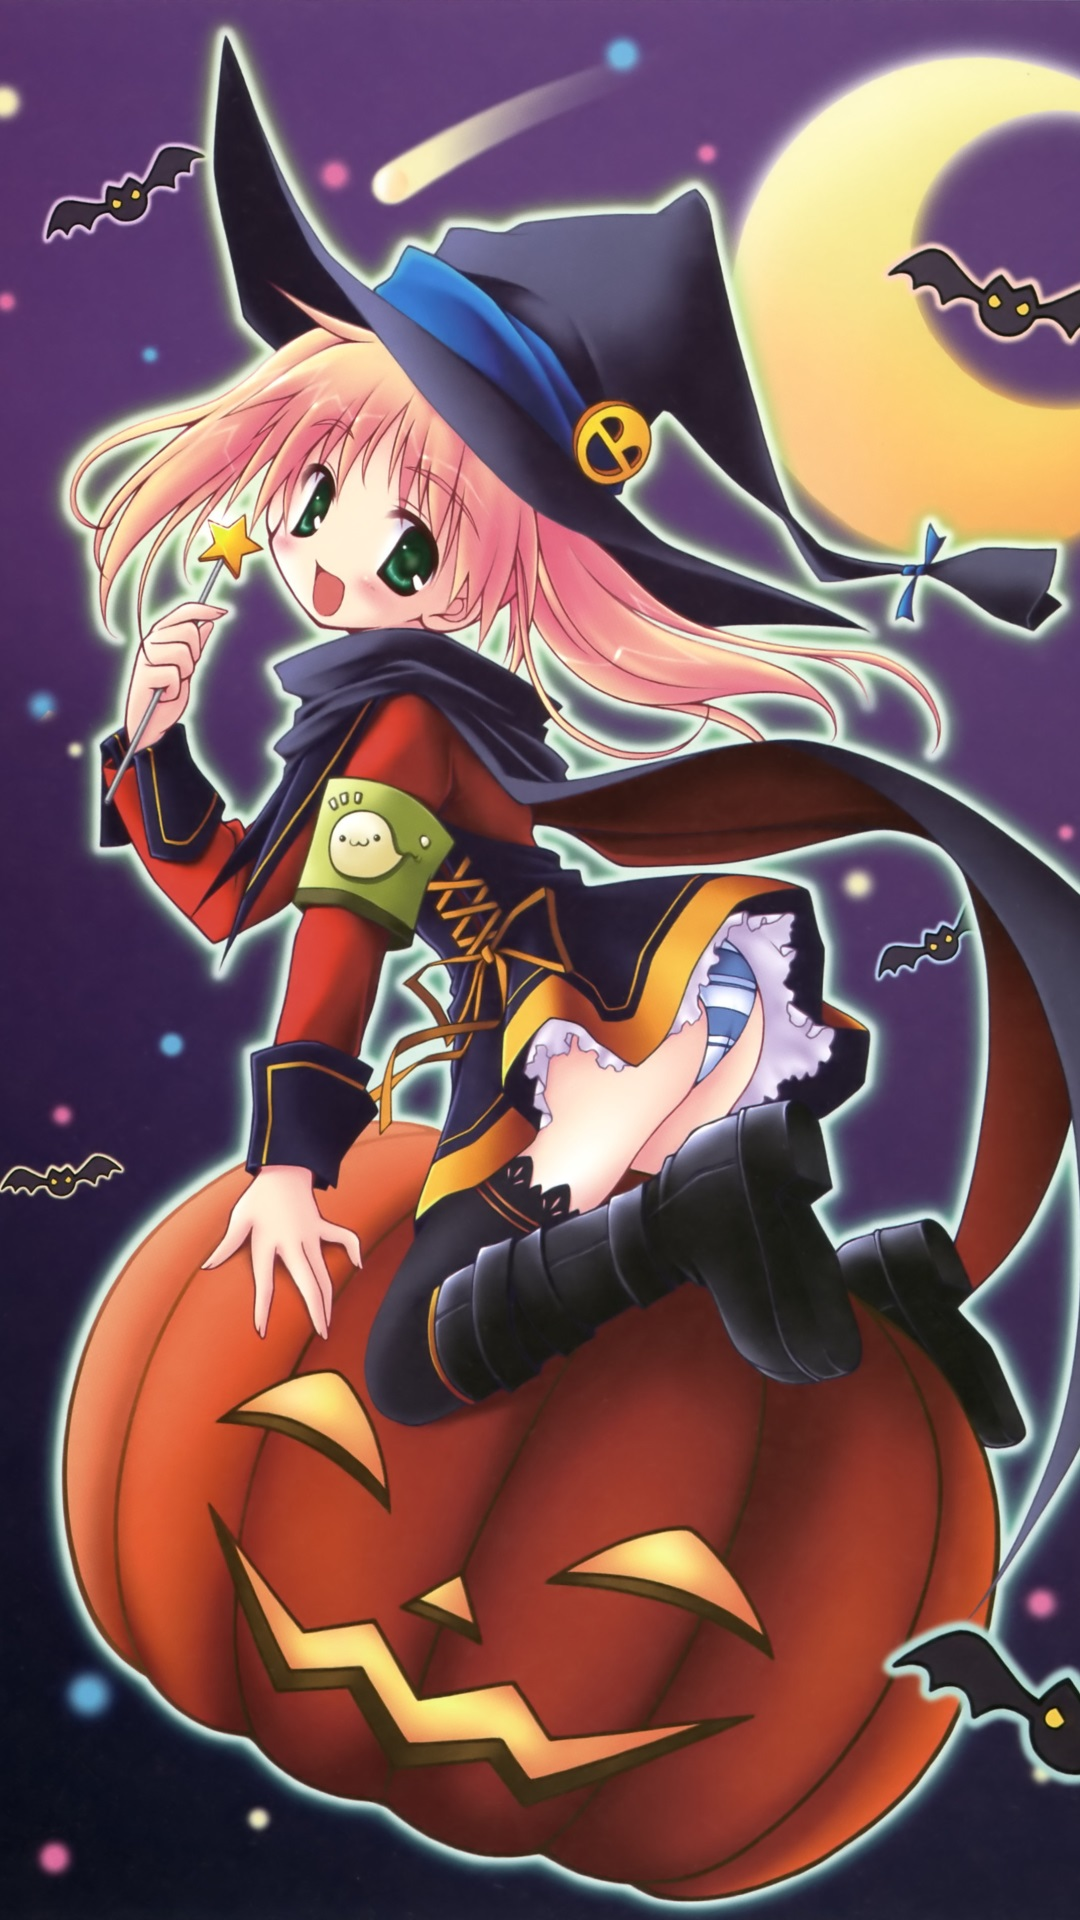 Anime Halloween 2013Magic THL W9 wallpaper1080x1920 1 1080x1920